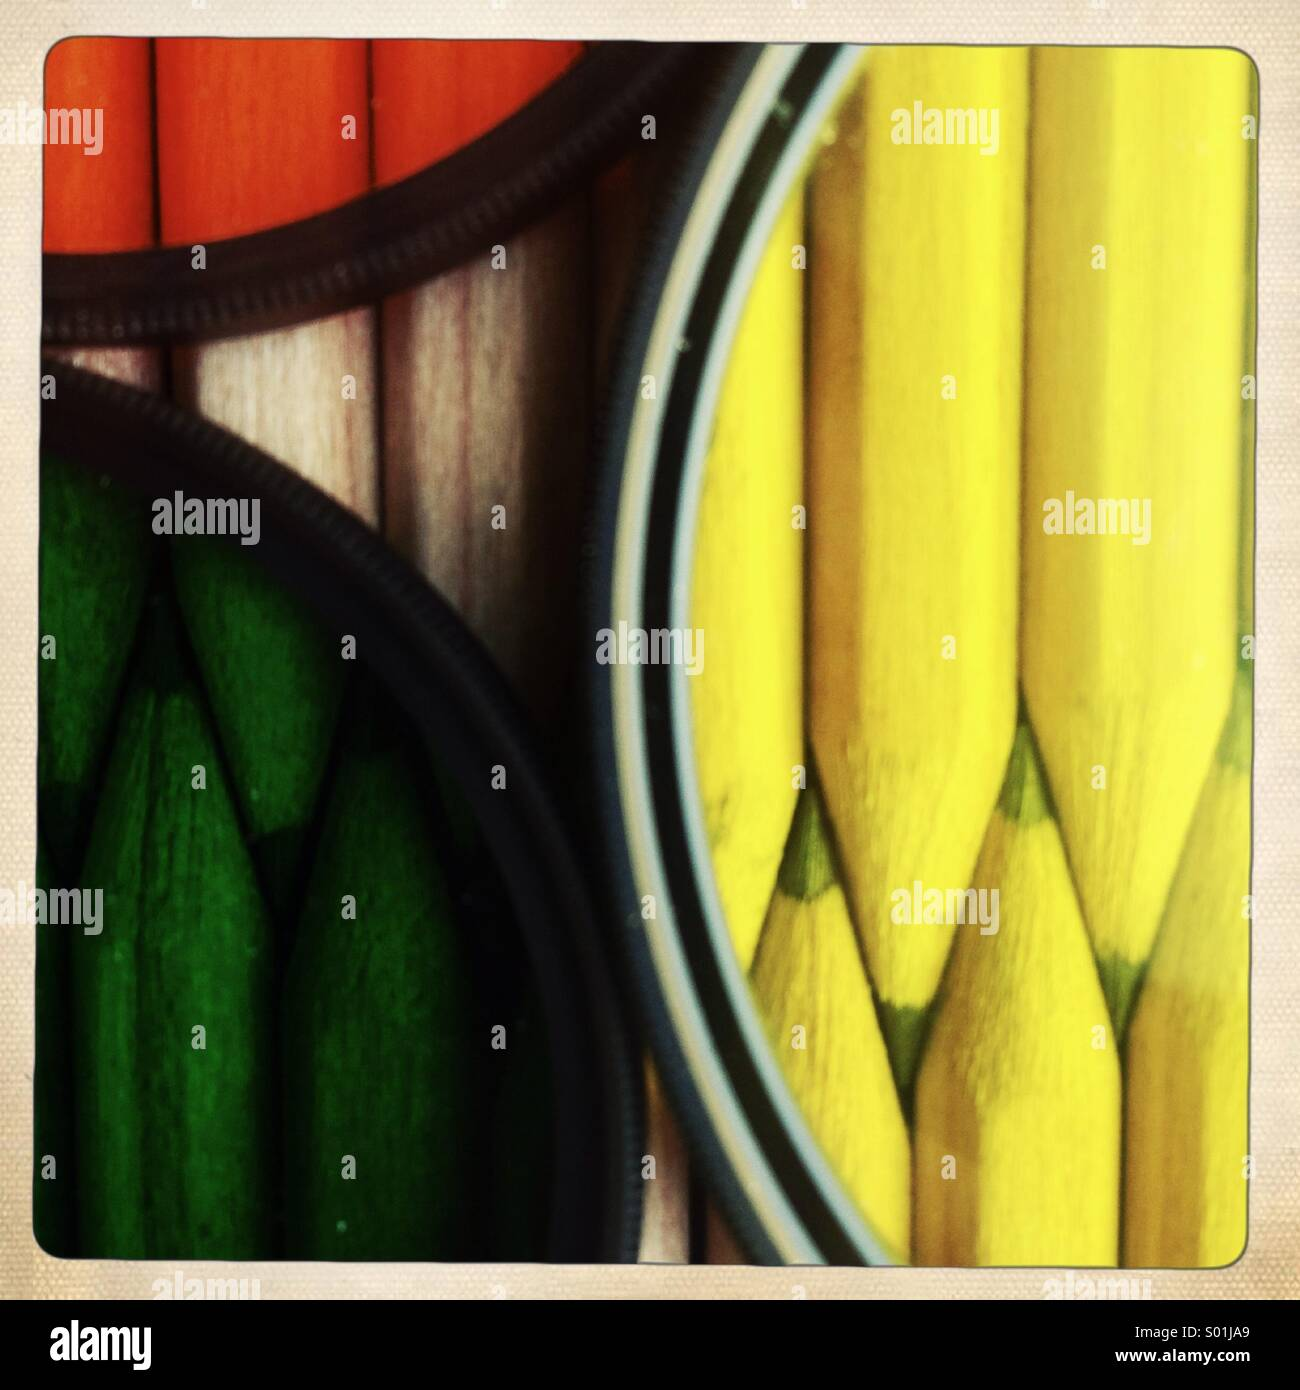 Pencils behind color photographic filters - Stock Image